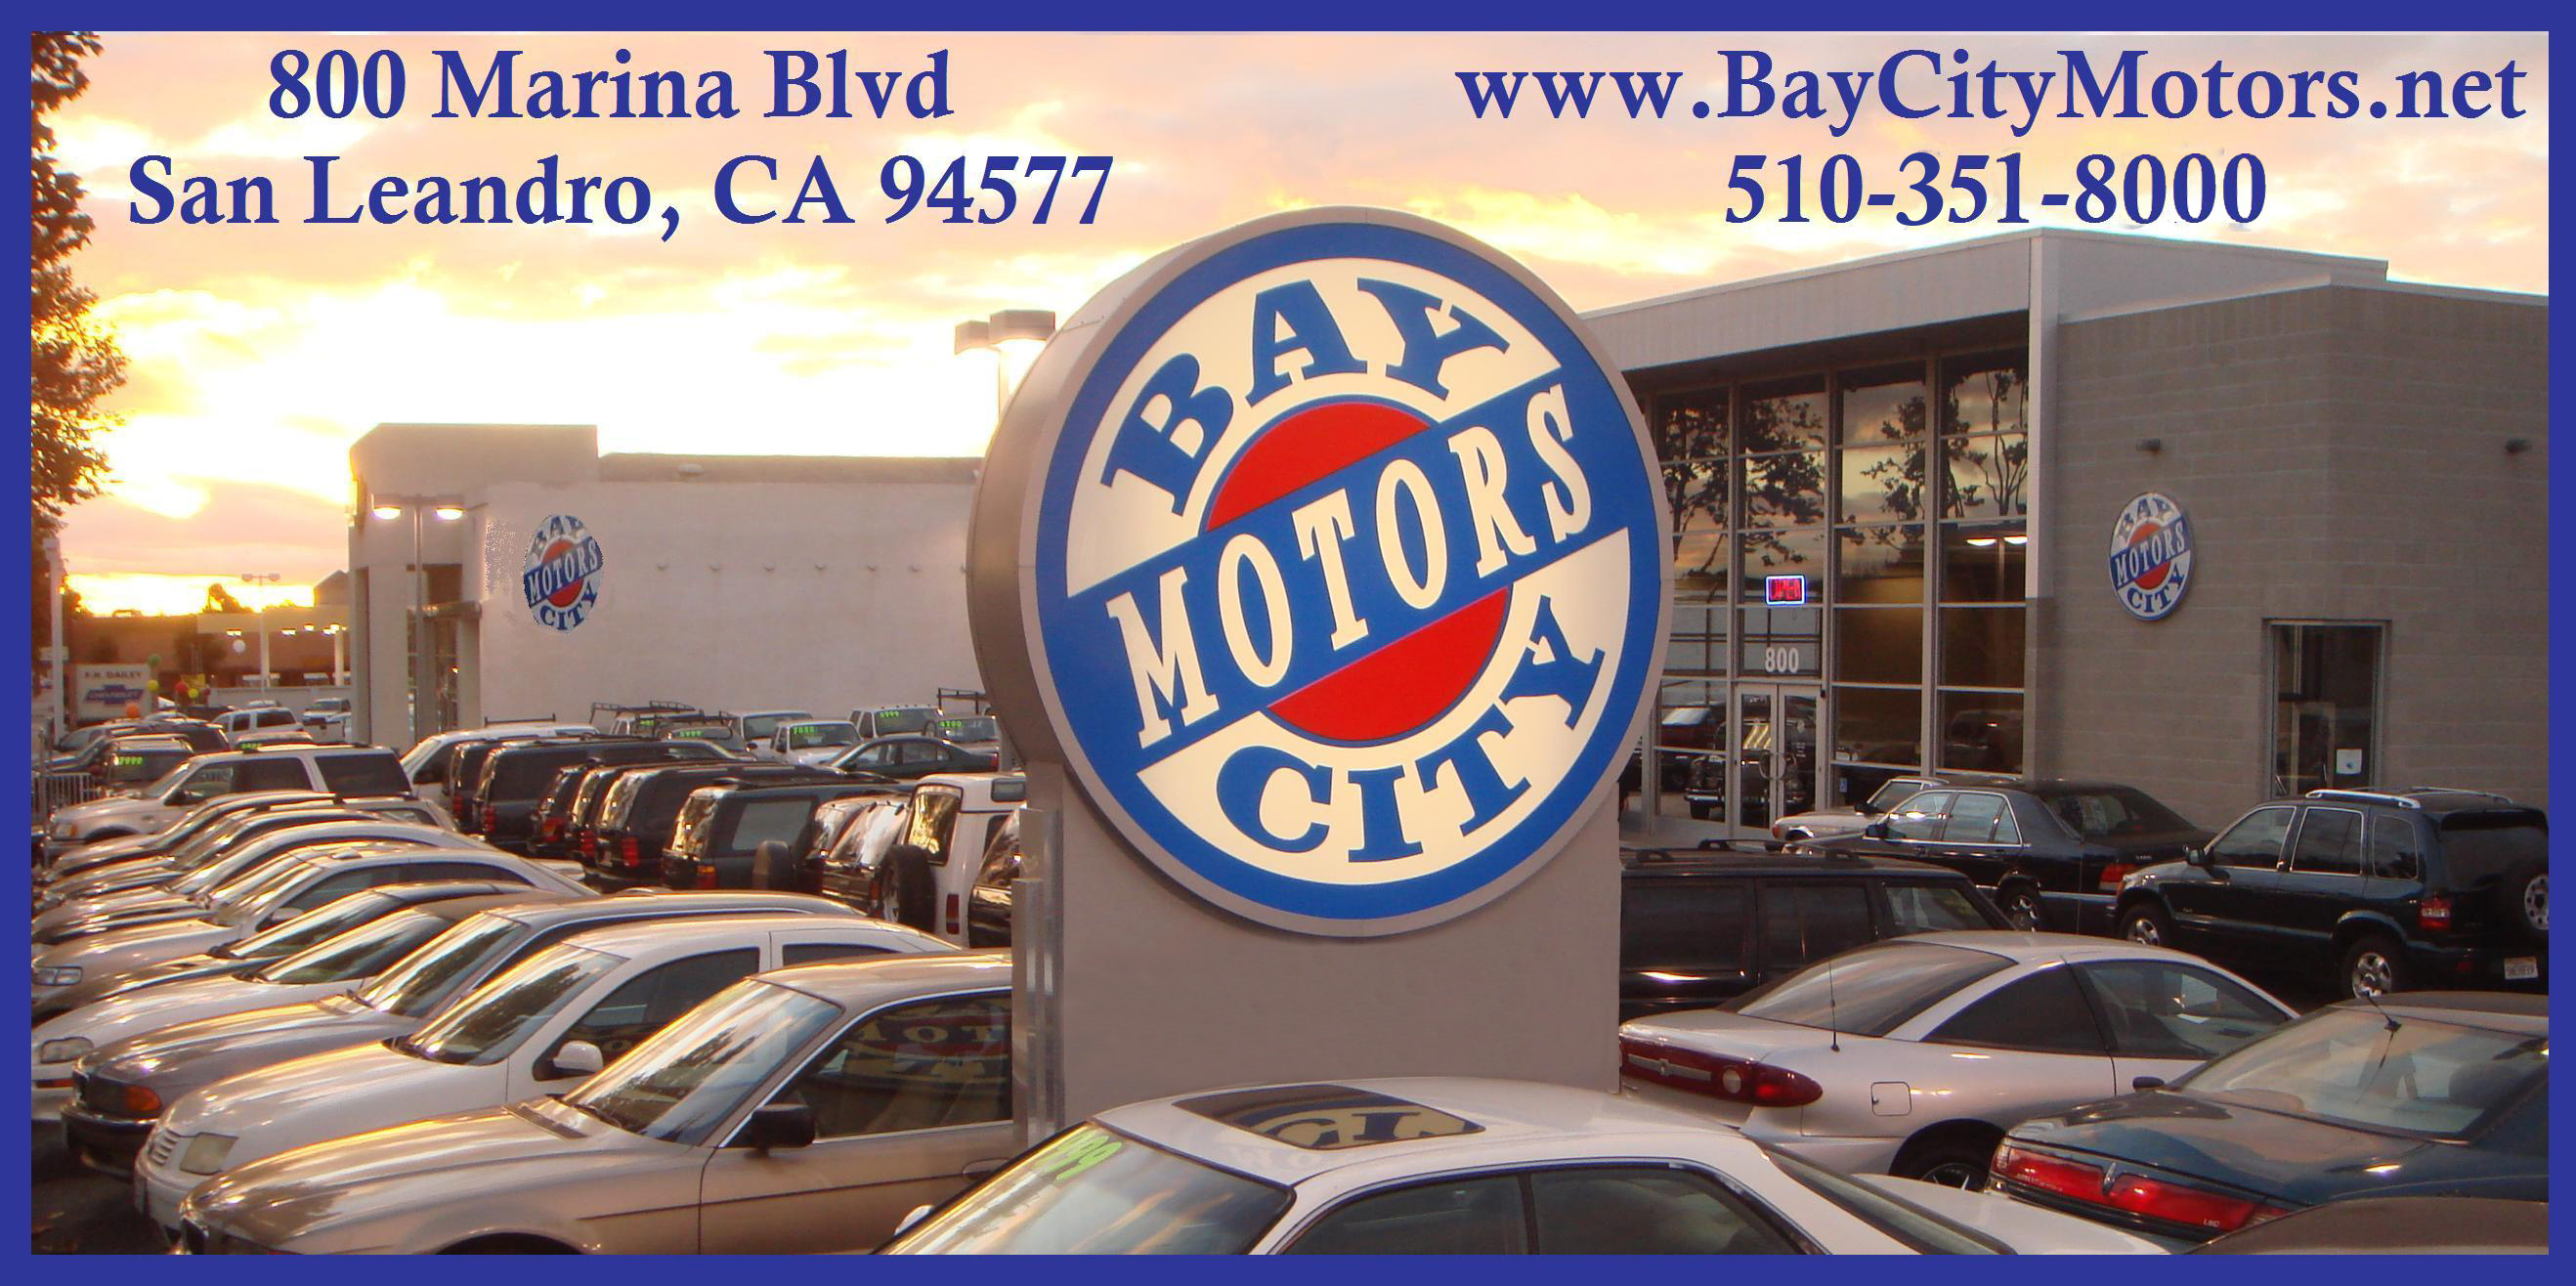 bay city motors san leandro